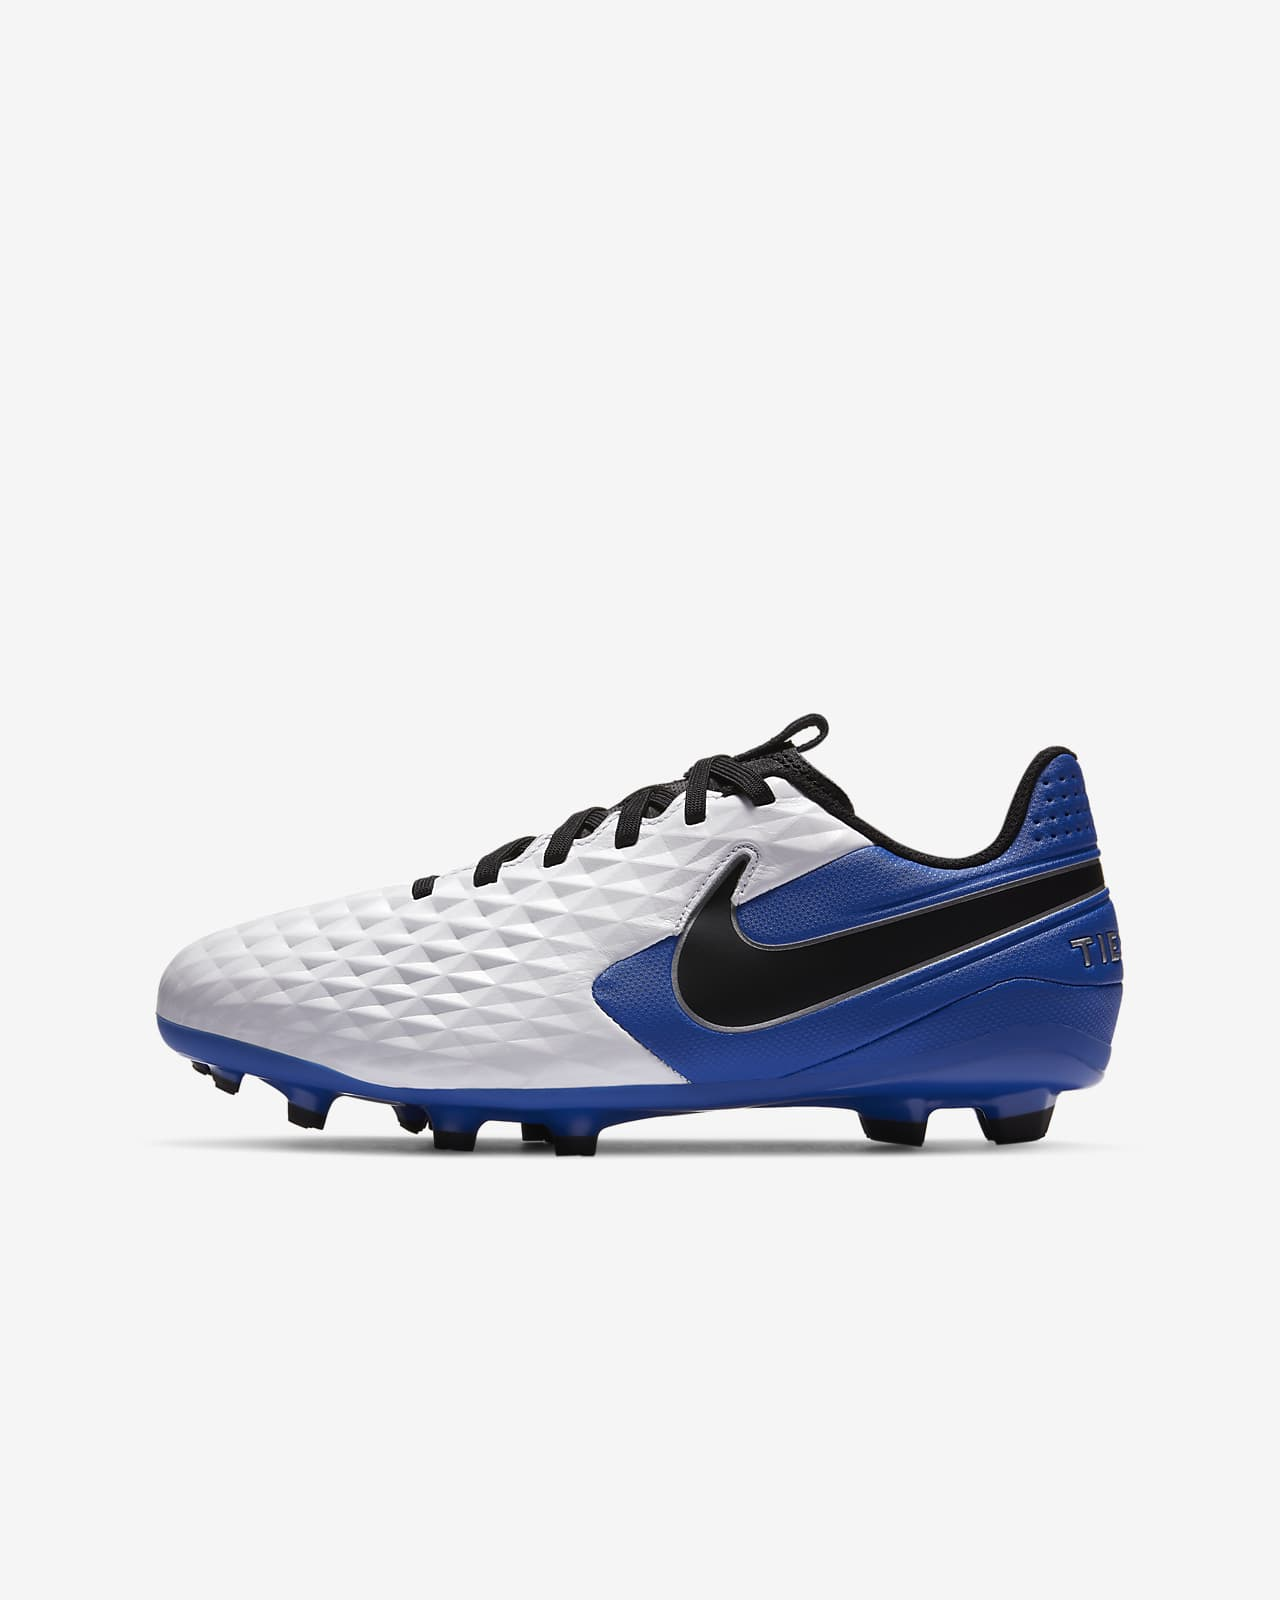 Sureste resultado Agresivo  Nike Jr. Tiempo Legend 8 Academy MG Younger/Older Kids' Multi-Ground  Football Boot. Nike CA